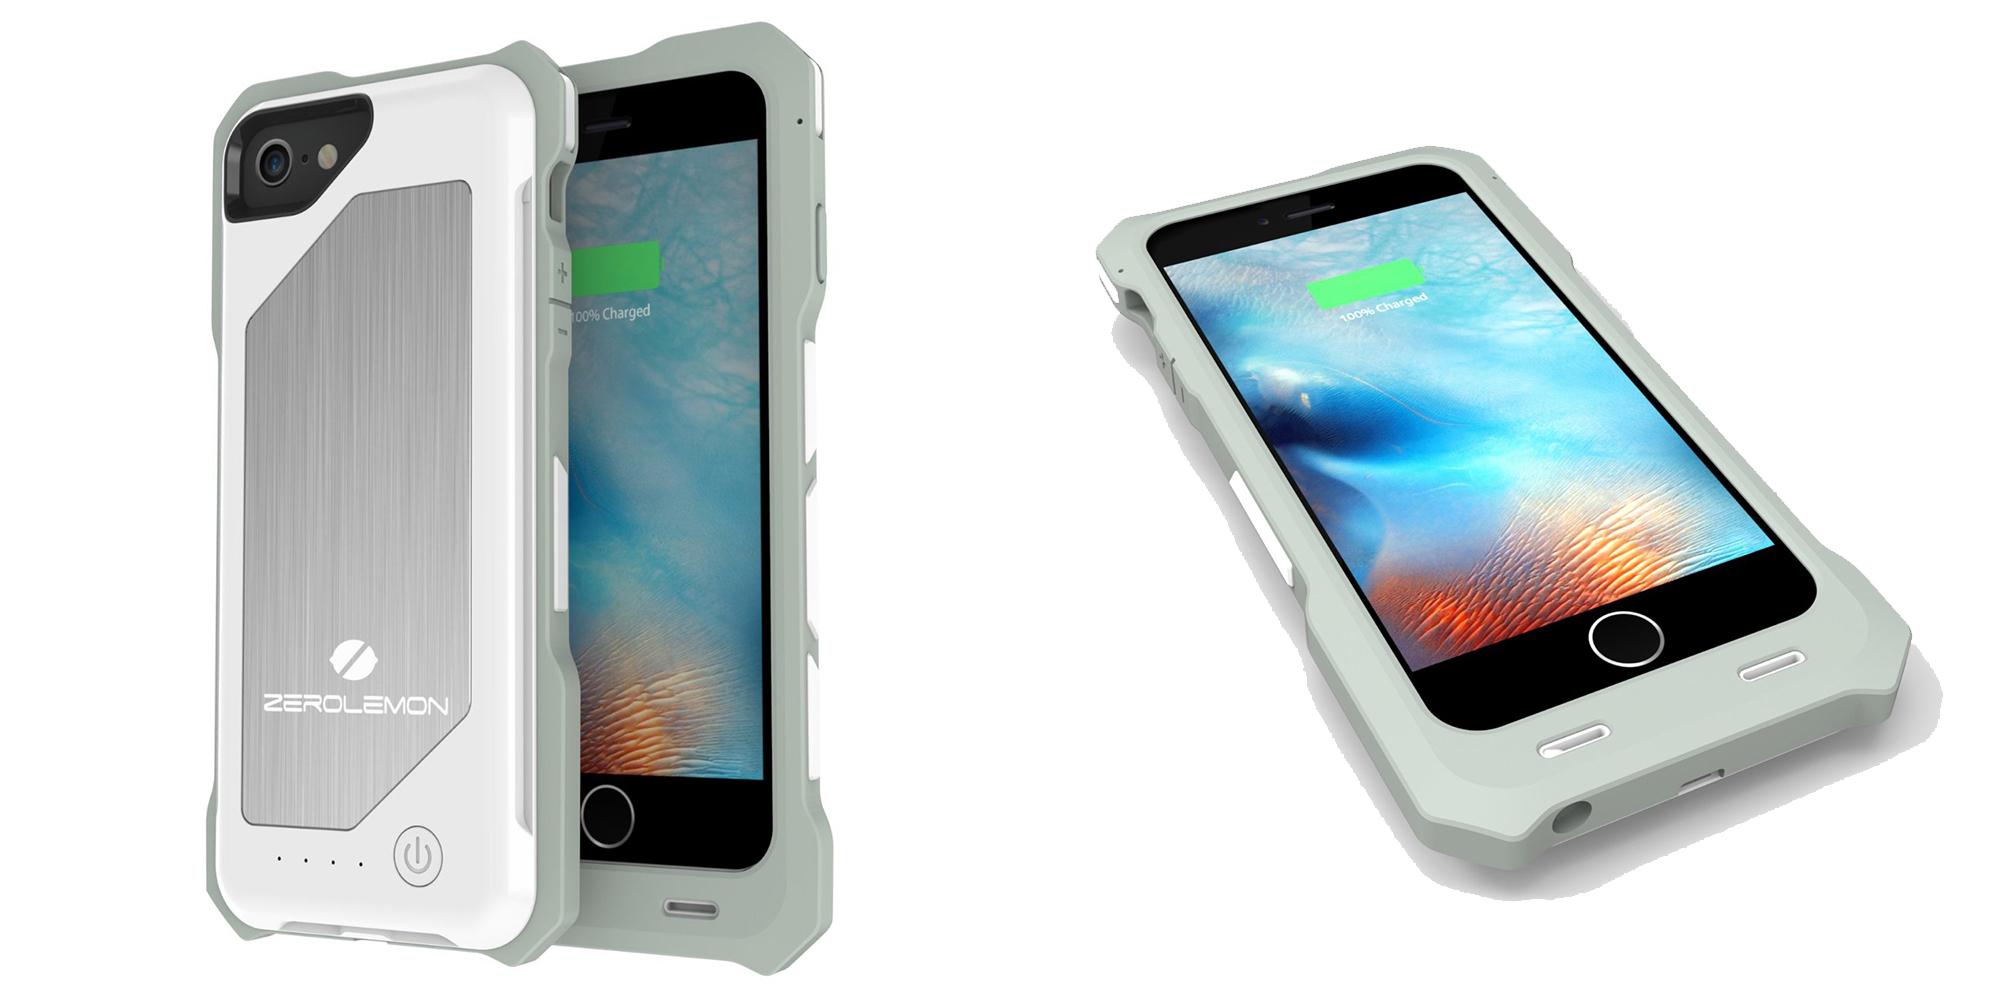 zerolemon-iphone-battery-case-deal